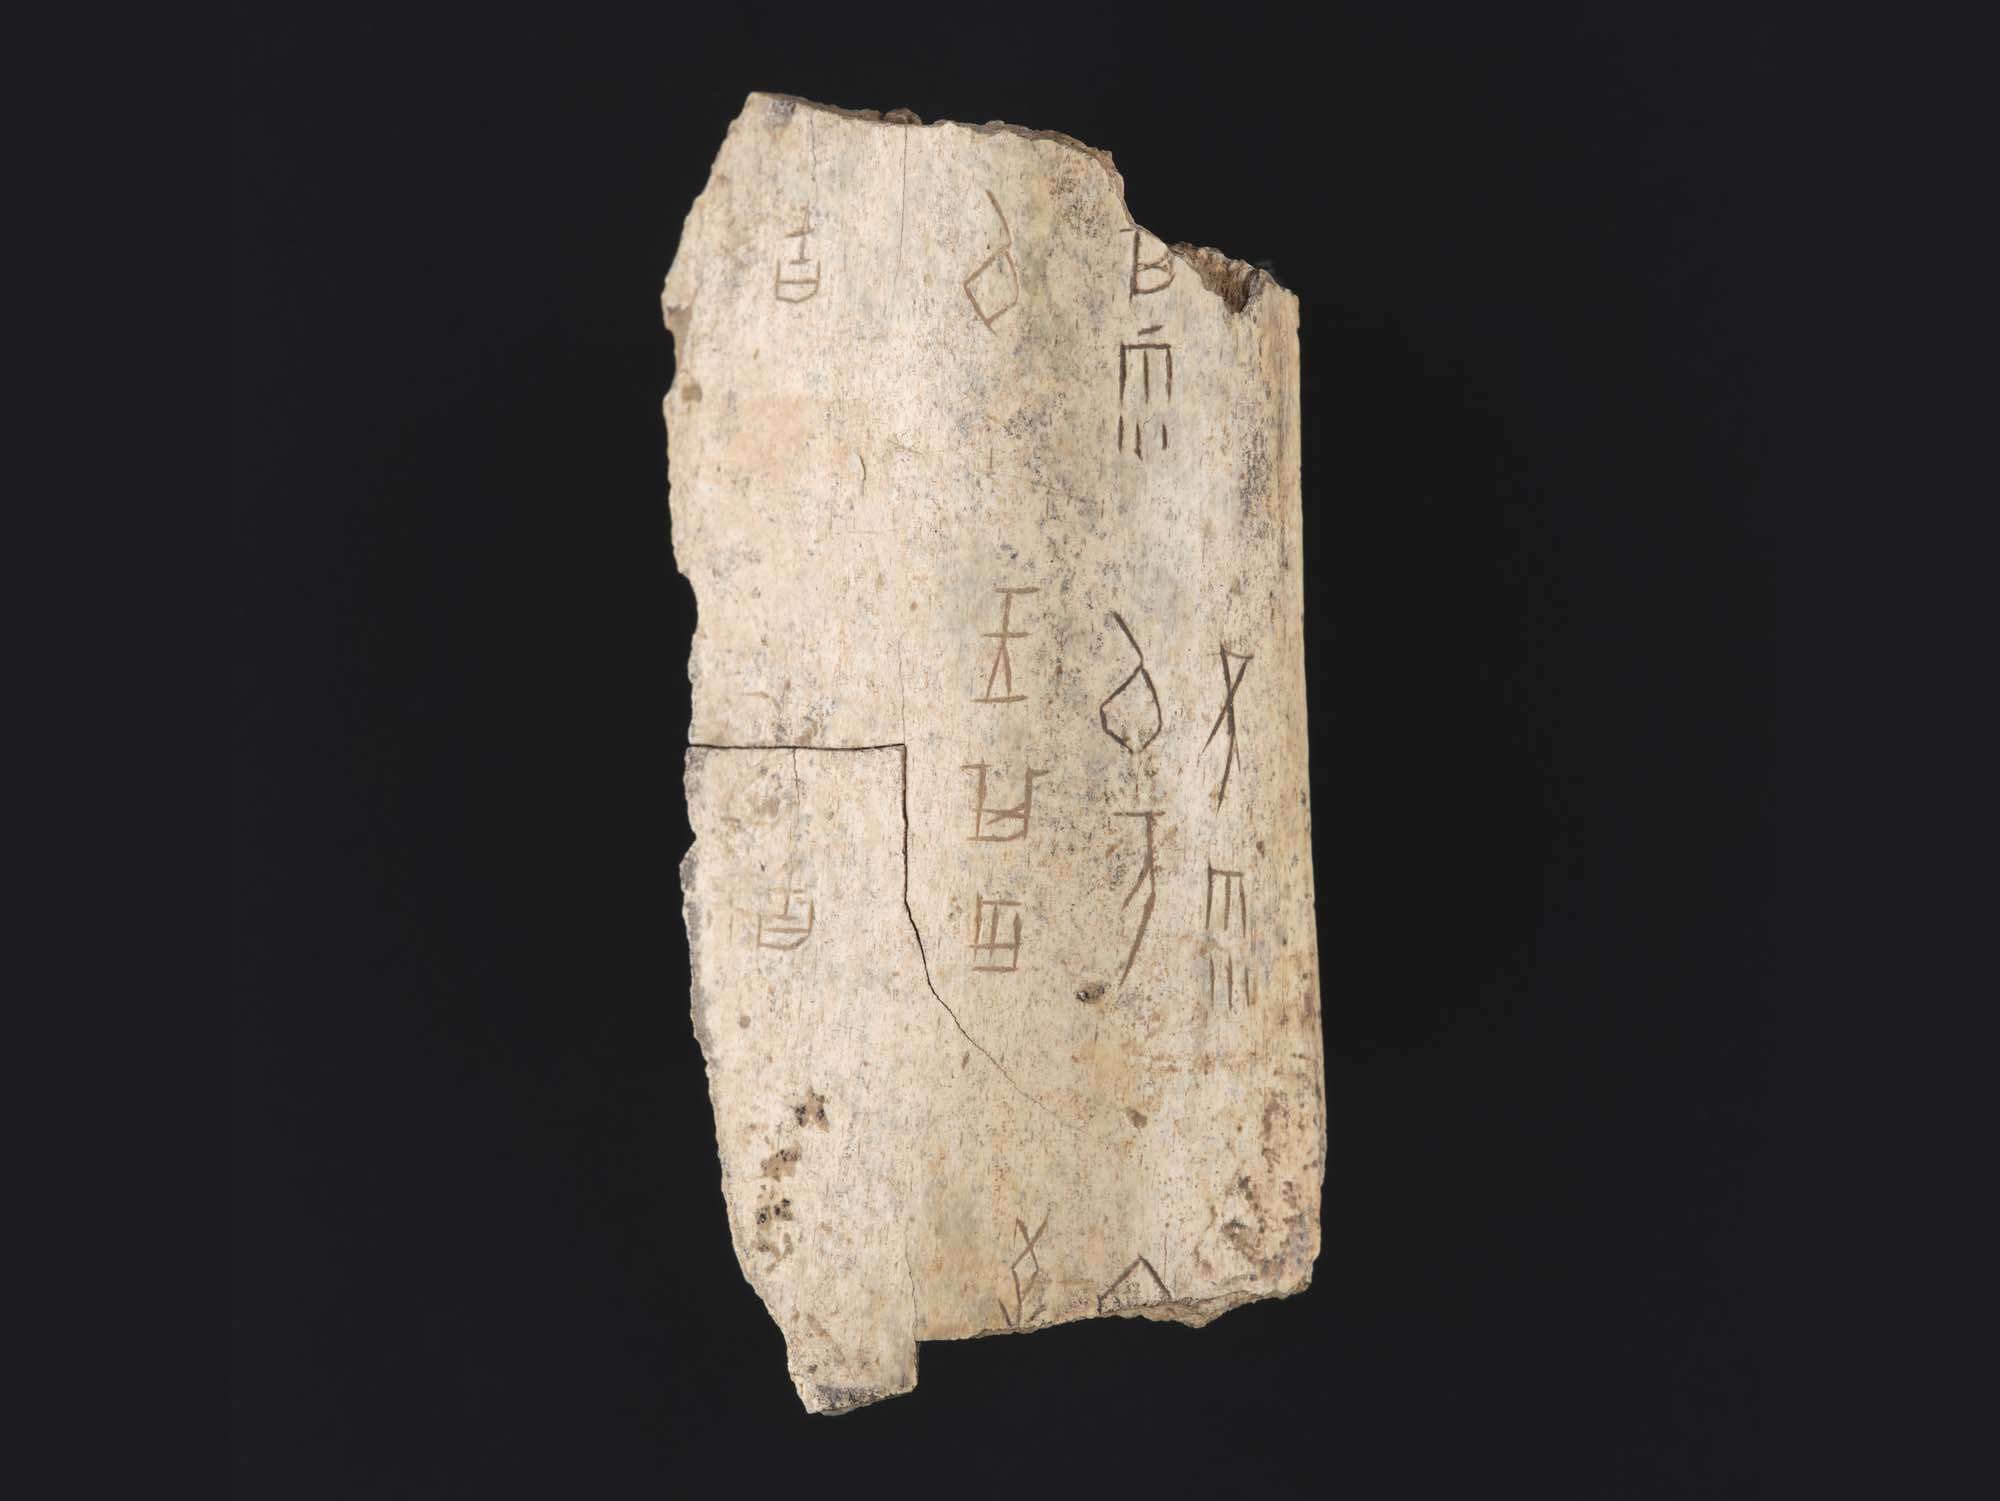 a photo of a piece of animal bone with Chinese writing on it